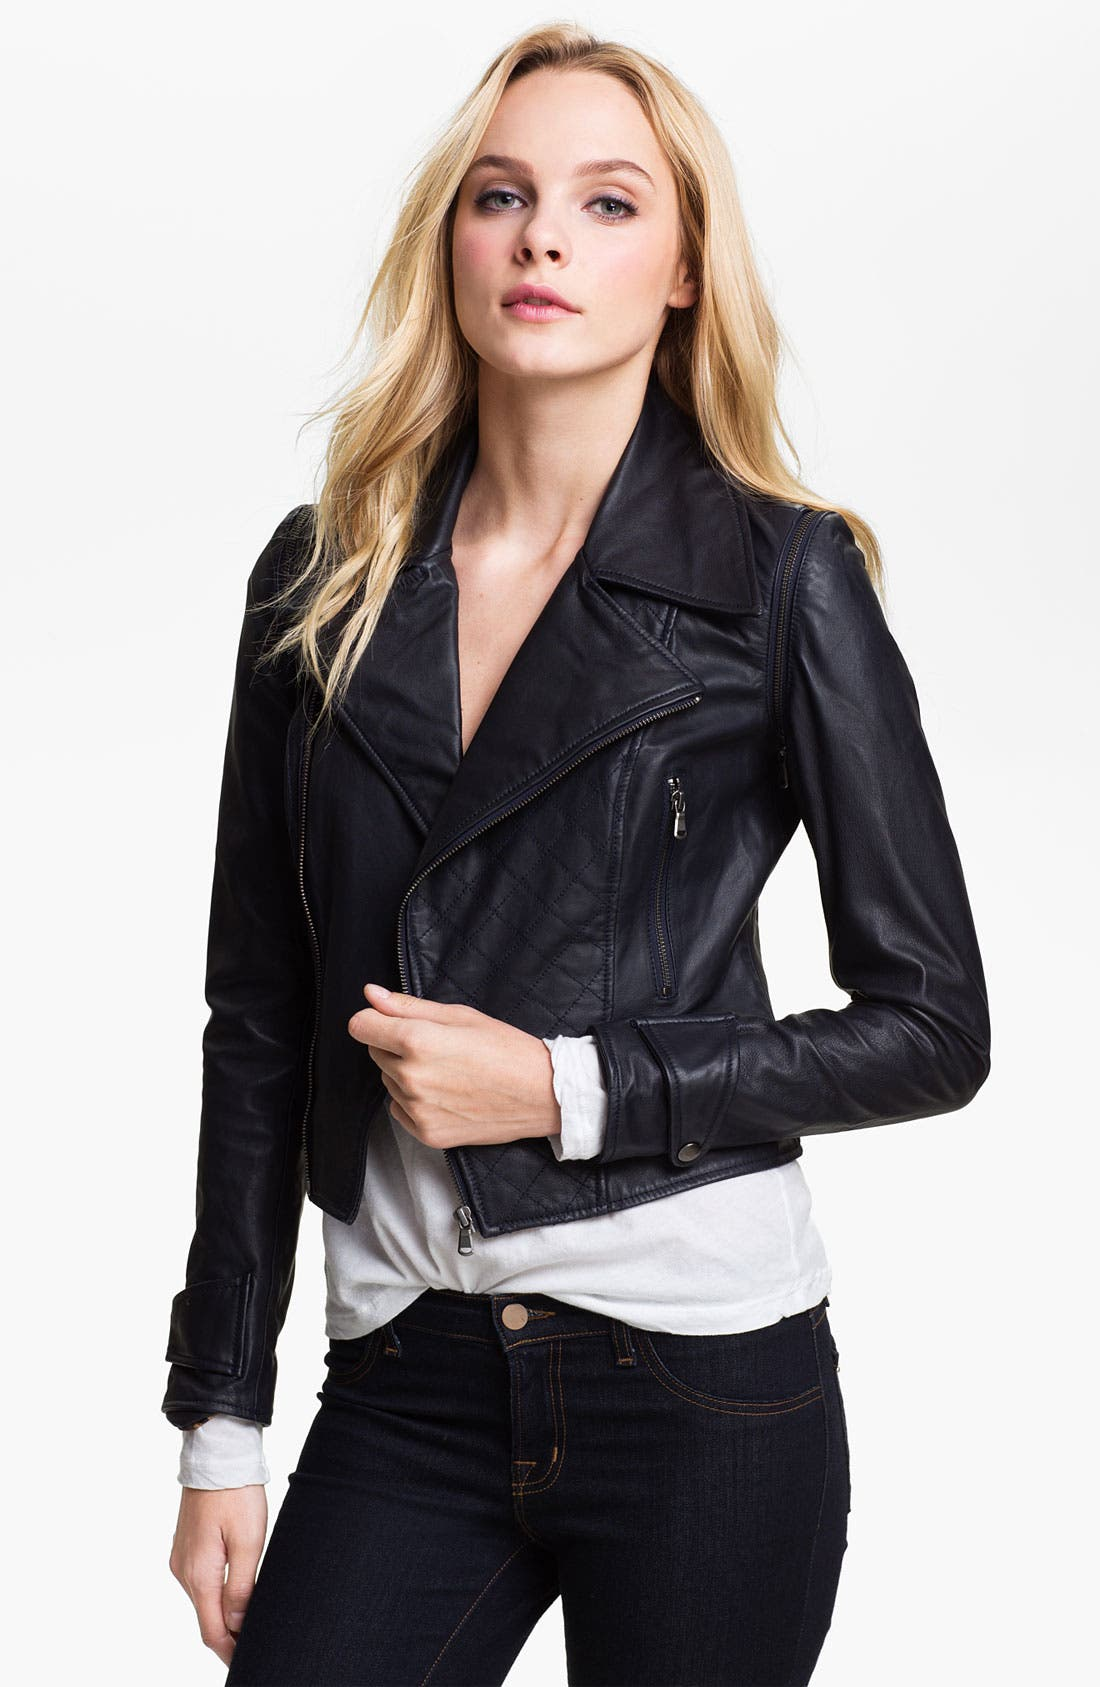 Kenna-T Convertible Quilted Leather Biker Jacket,                             Main thumbnail 1, color,                             410